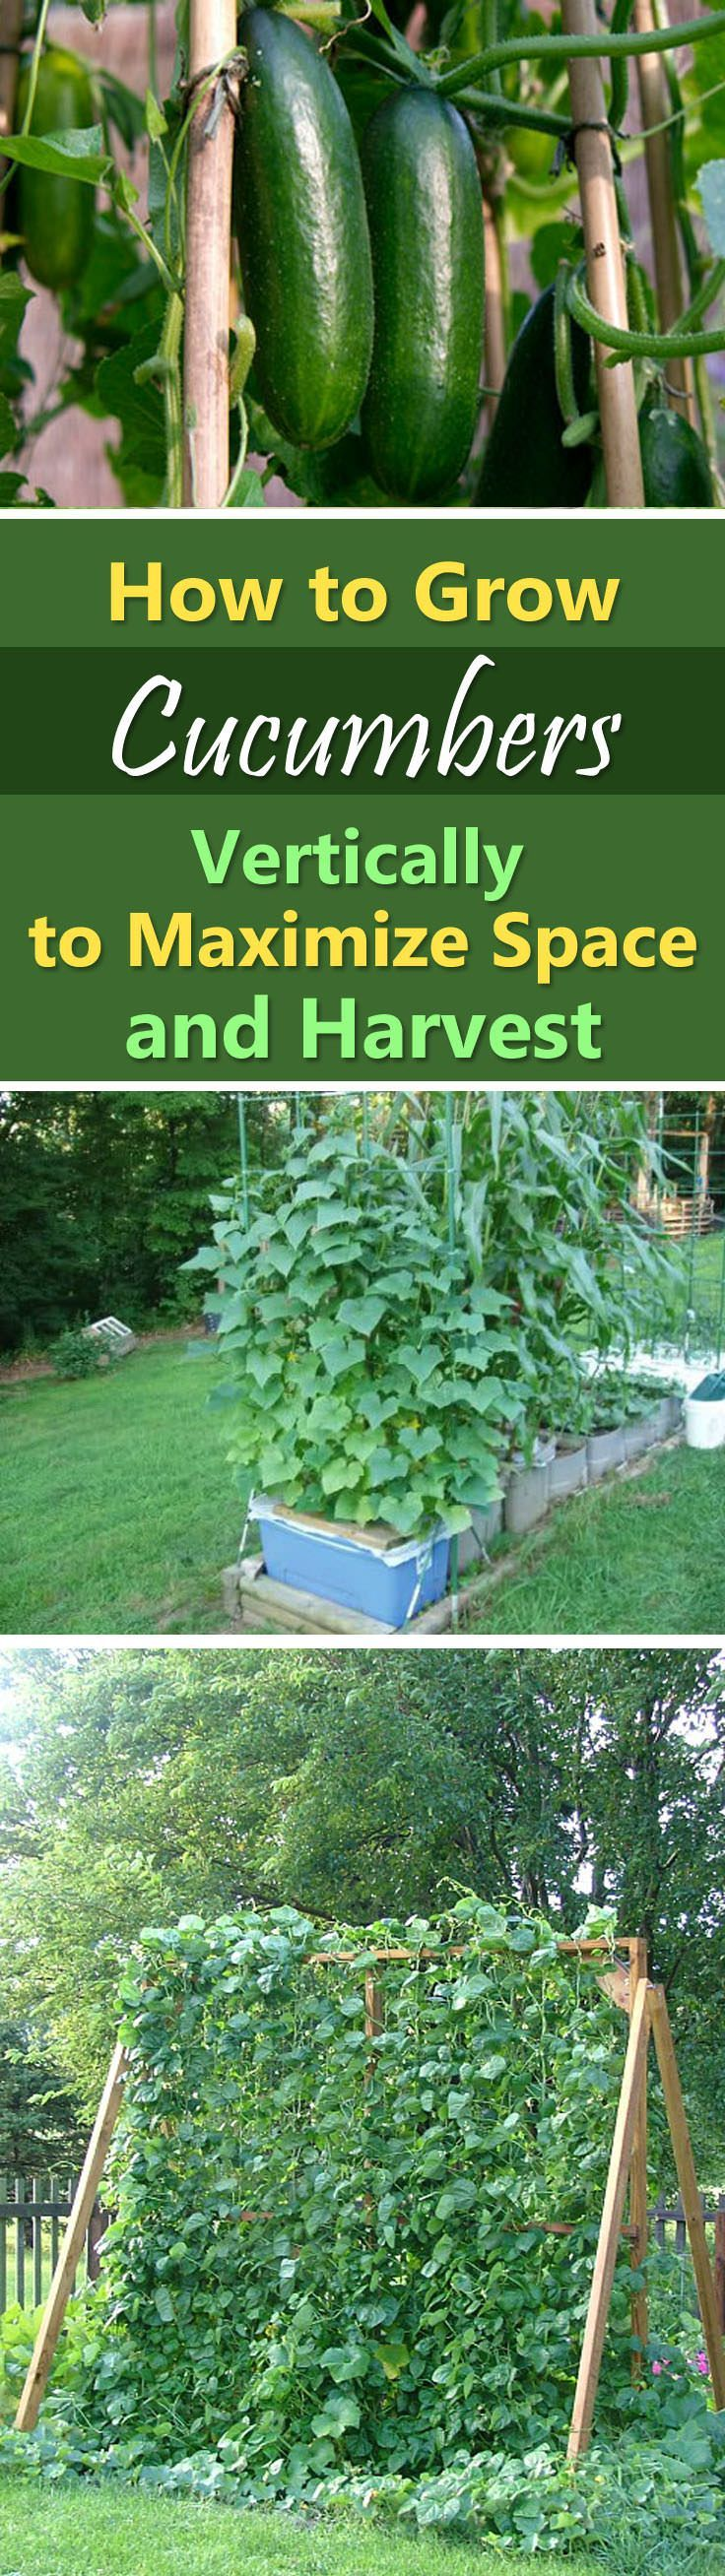 Small home vegetable garden - Growing Cucumbers Vertically